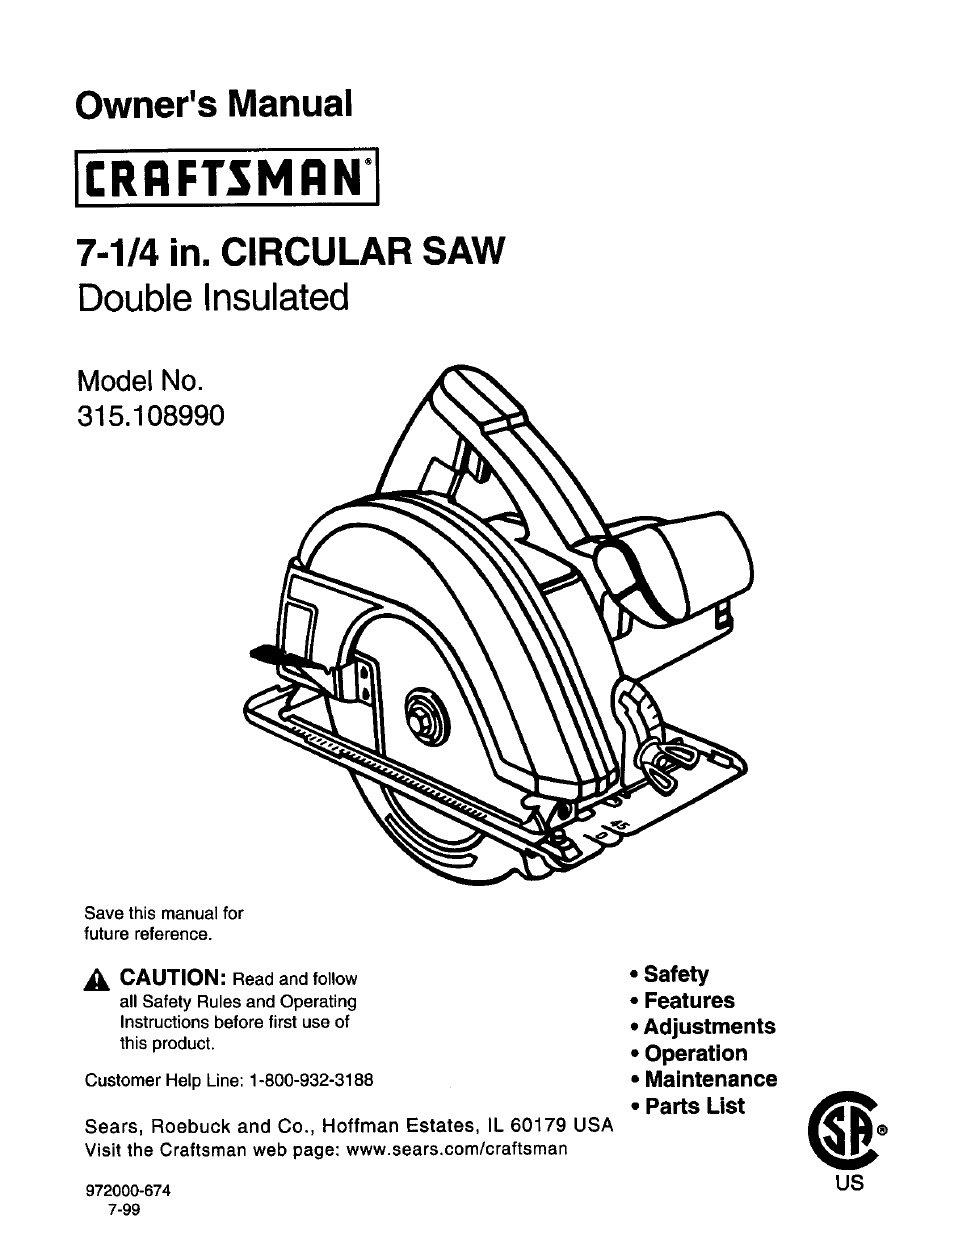 craftsman 315 108990 user manual 20 pages rh manualsdir com craftsman mitre saw user manual craftsman circular saw user manual